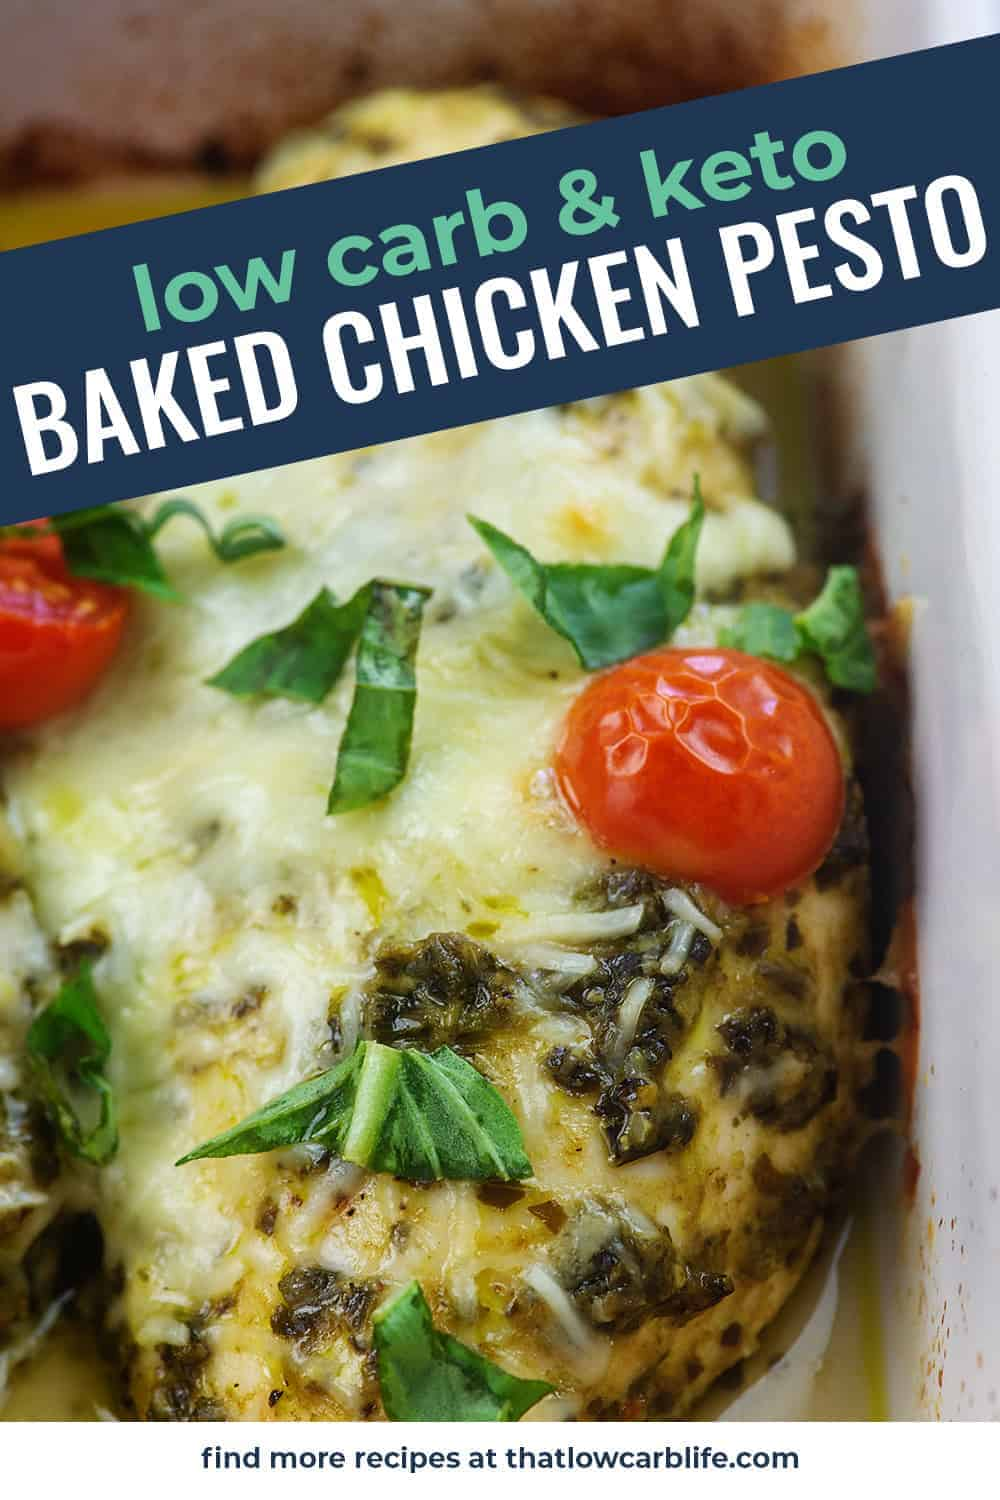 baked chicken pesto with cheese and cherry tomatoes in baking dish